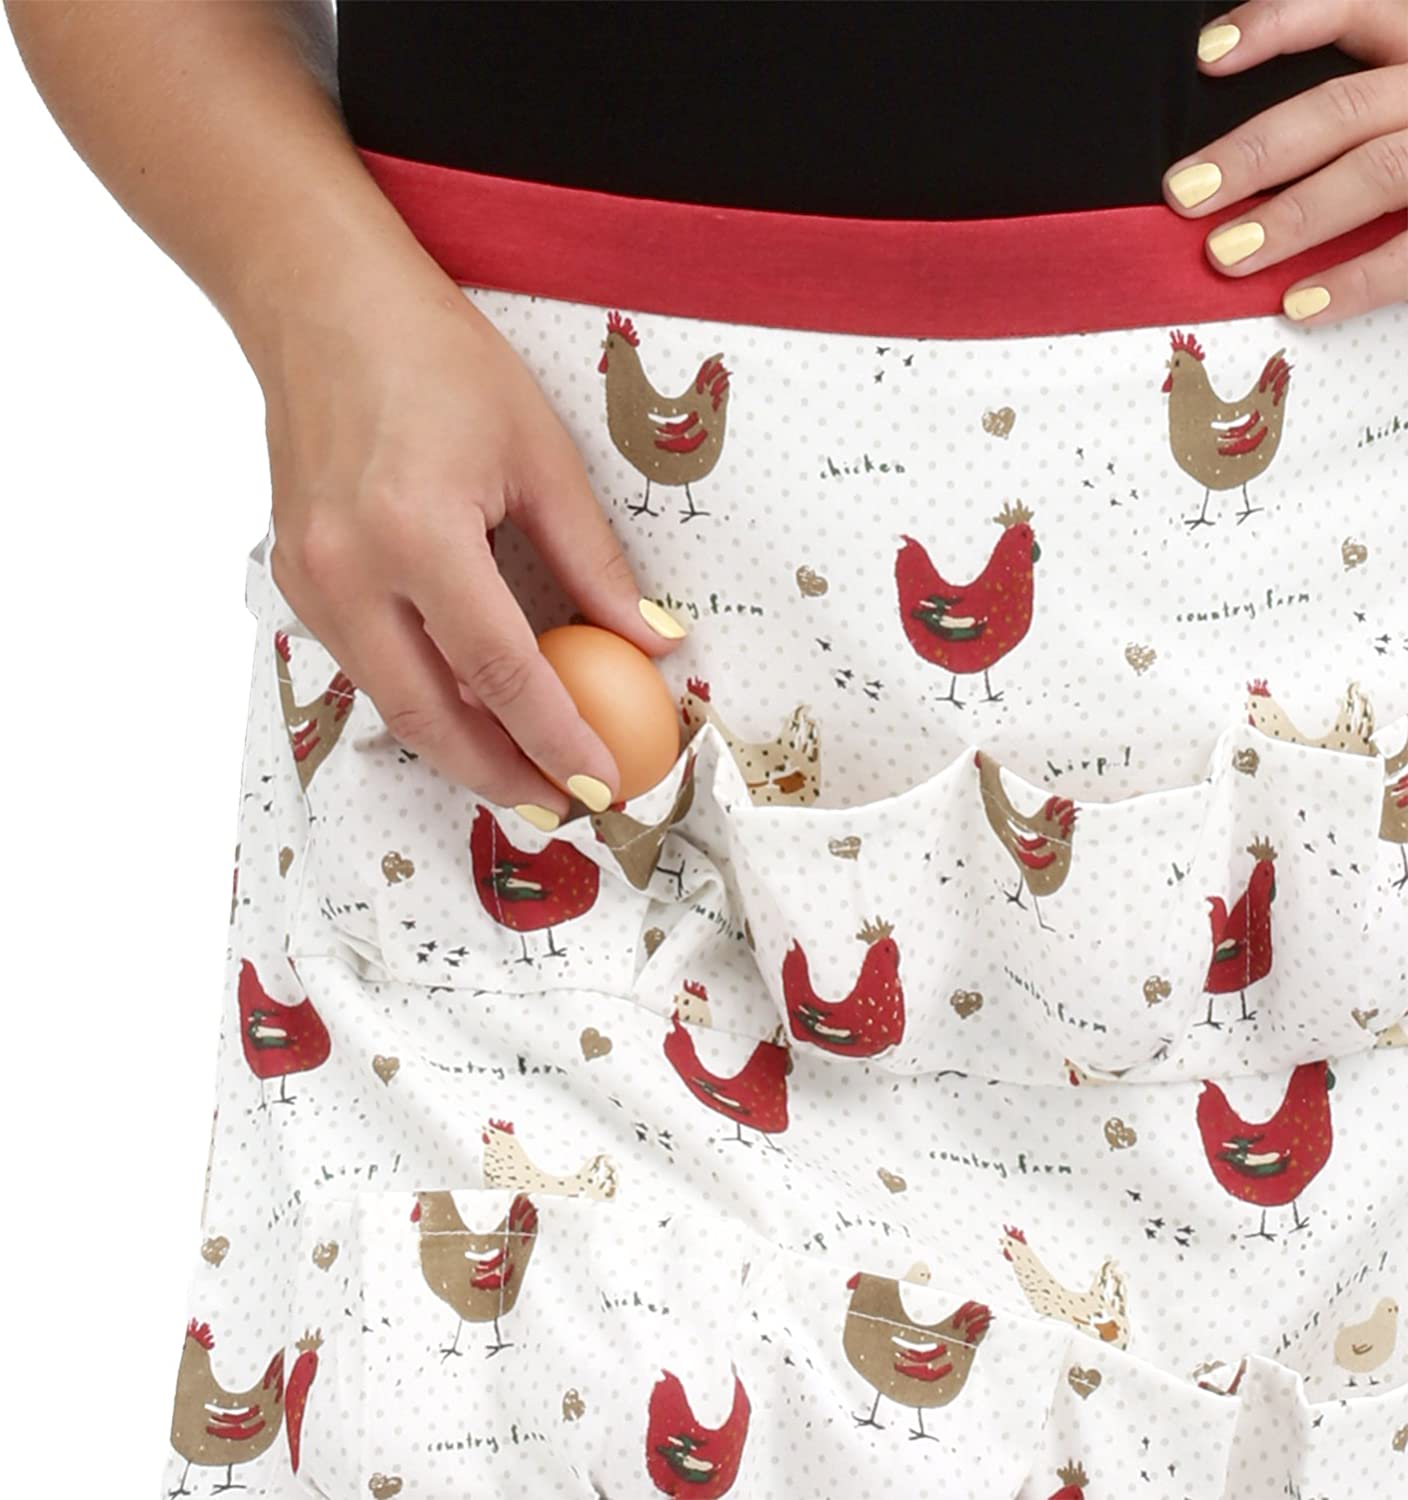 Cackleberry Home Farmhouse Chicken Egg Collecting & Gathering Apron 12 Pockets (Adult Size)